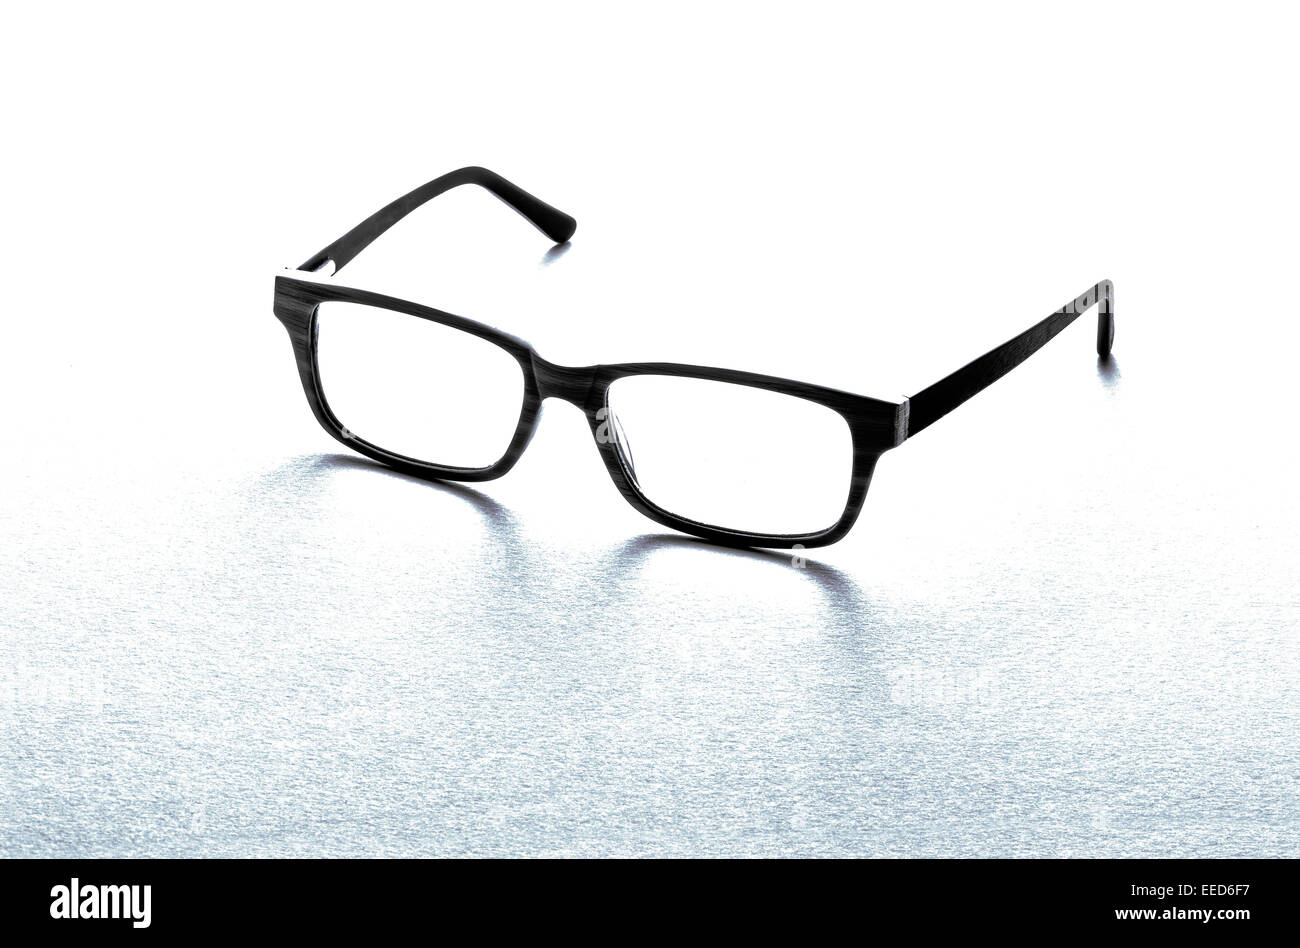 Pair of black framed spectacles or eyeglasses - Stock Image